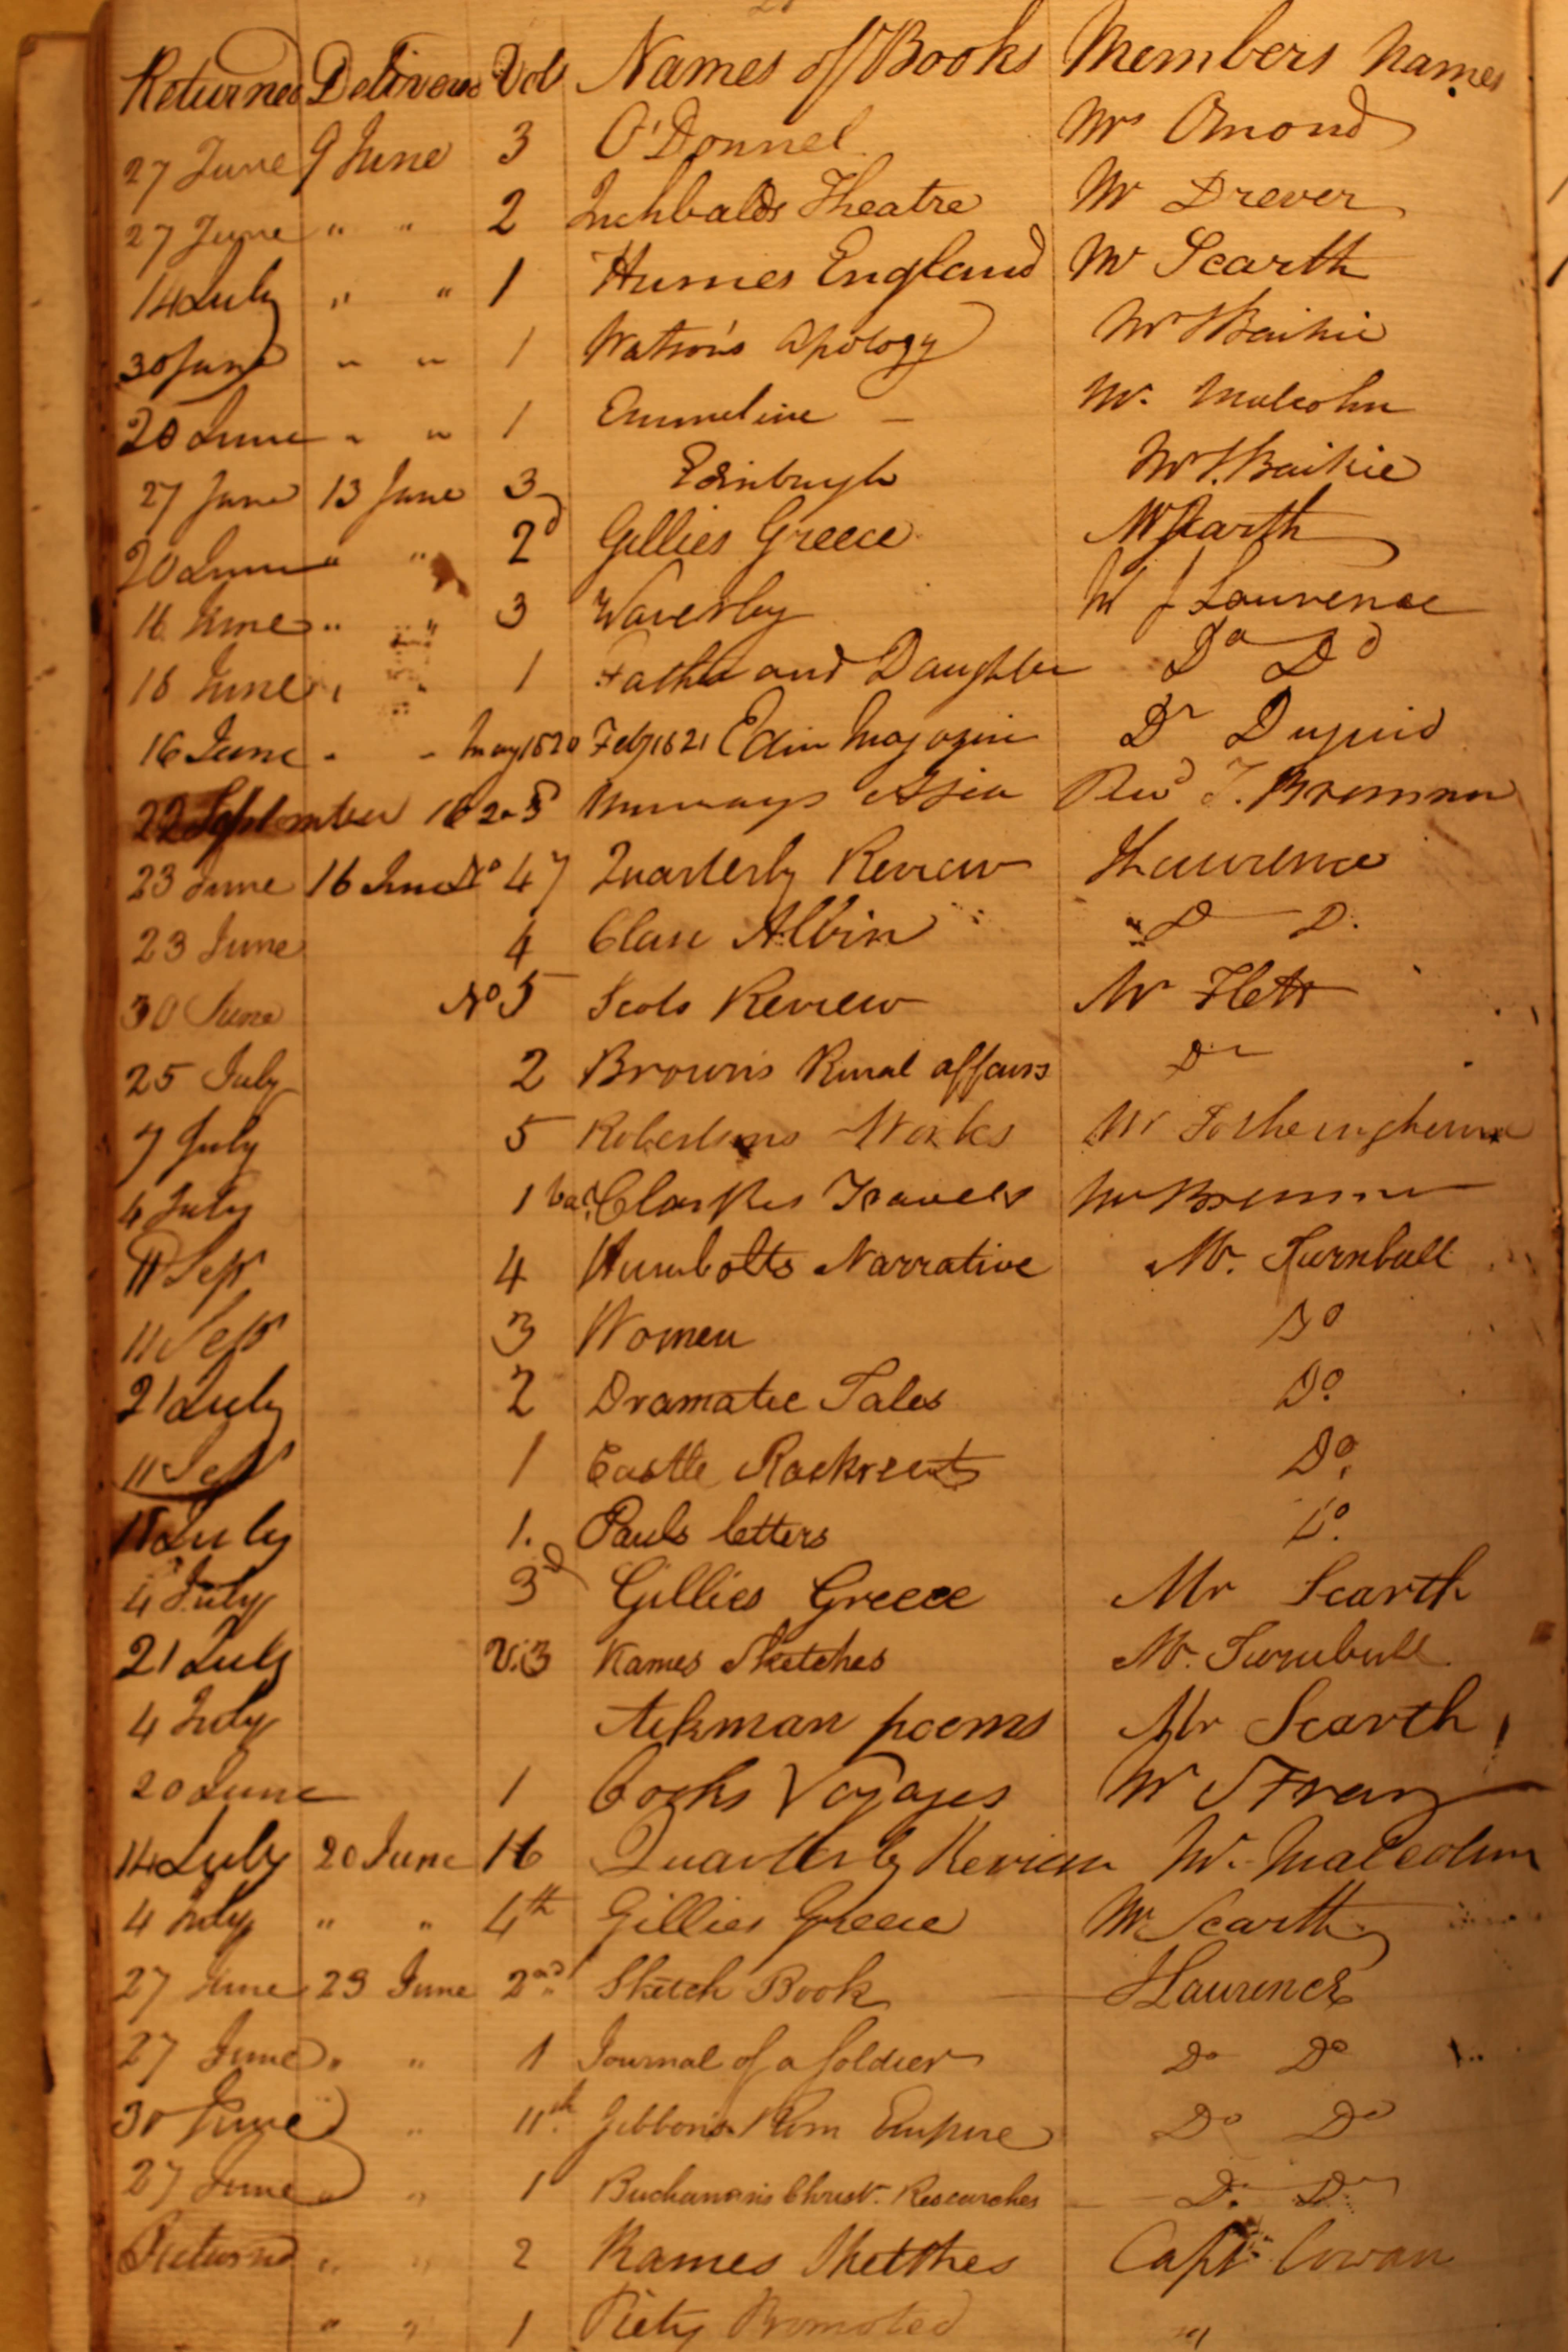 Photograph of entry for Brunton's works in 1816 Kirkwall Catalogue